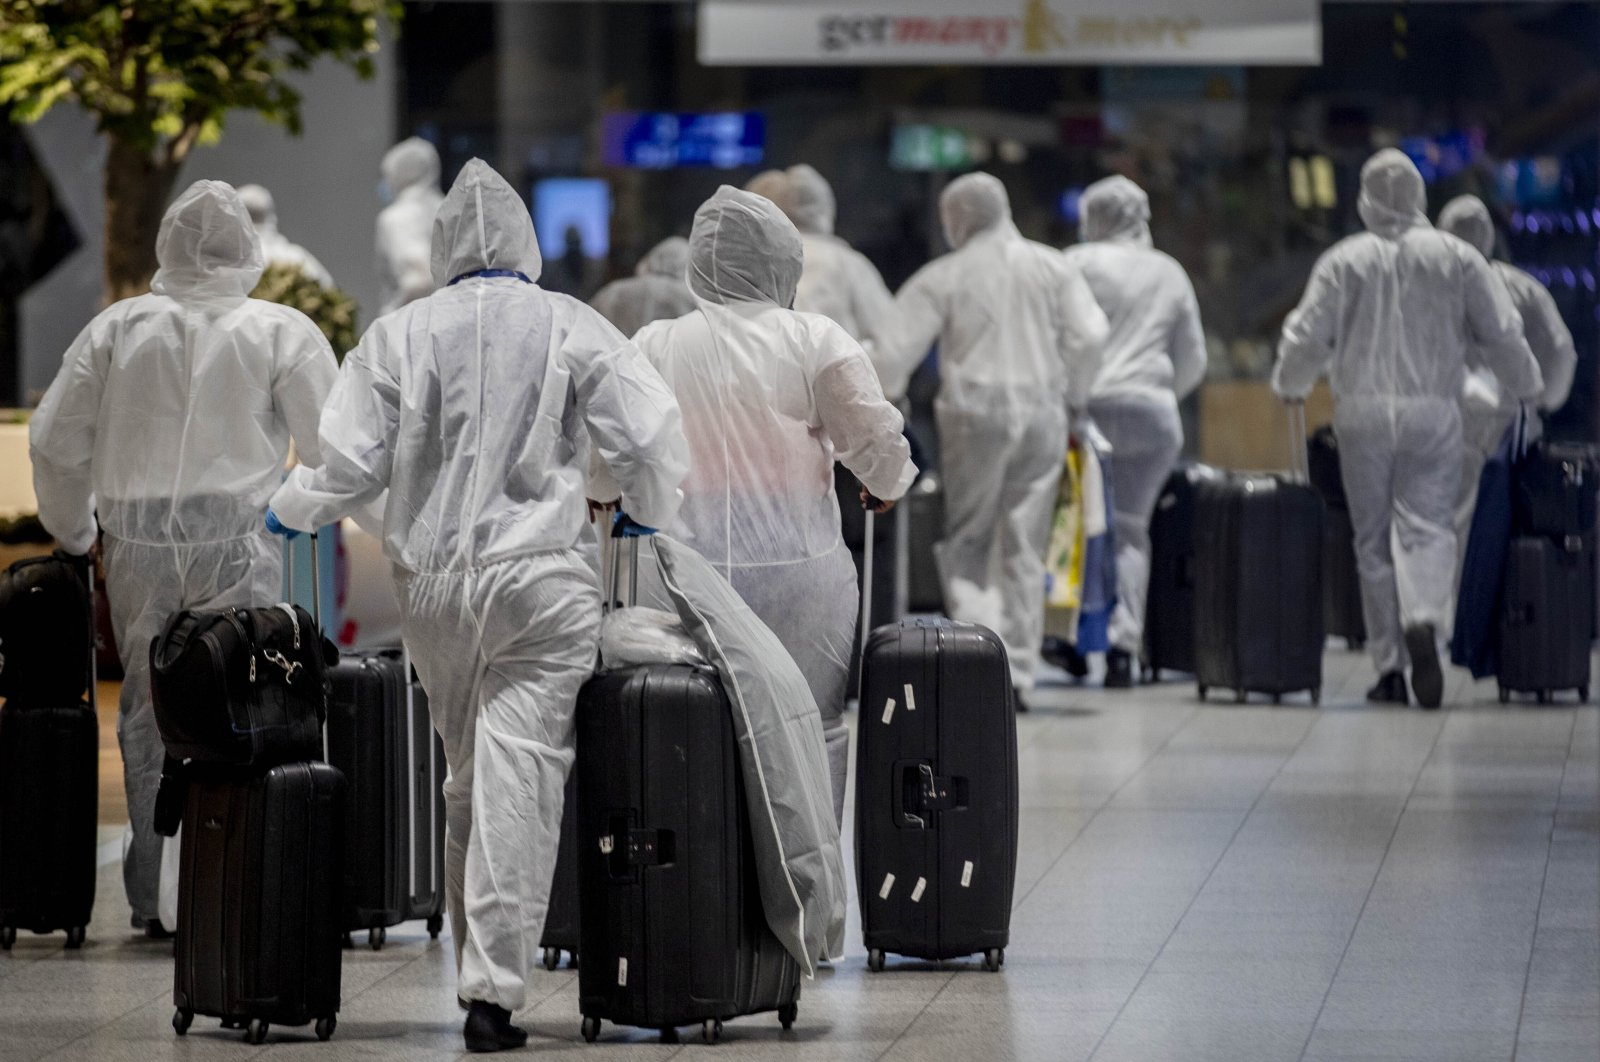 Crew members of South African Airways go through security check-in, Frankfurt, Germany, April 18, 2020. (AP Photo)